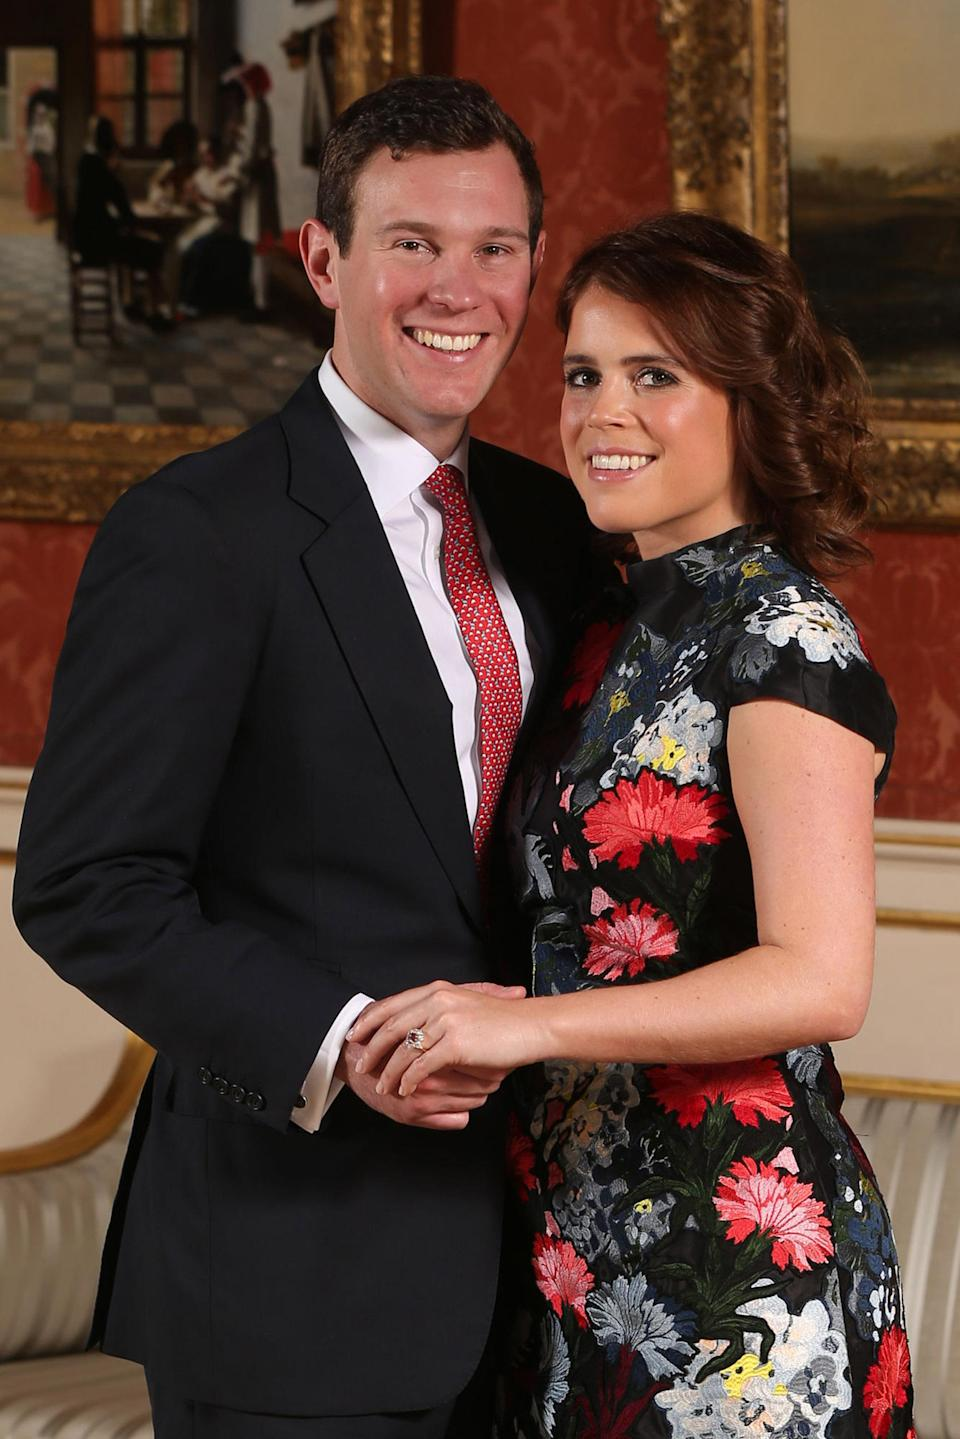 Princess Eugenie wore Erdem for her engagement announcement to Jack Brooksbank. [Photo: Getty]